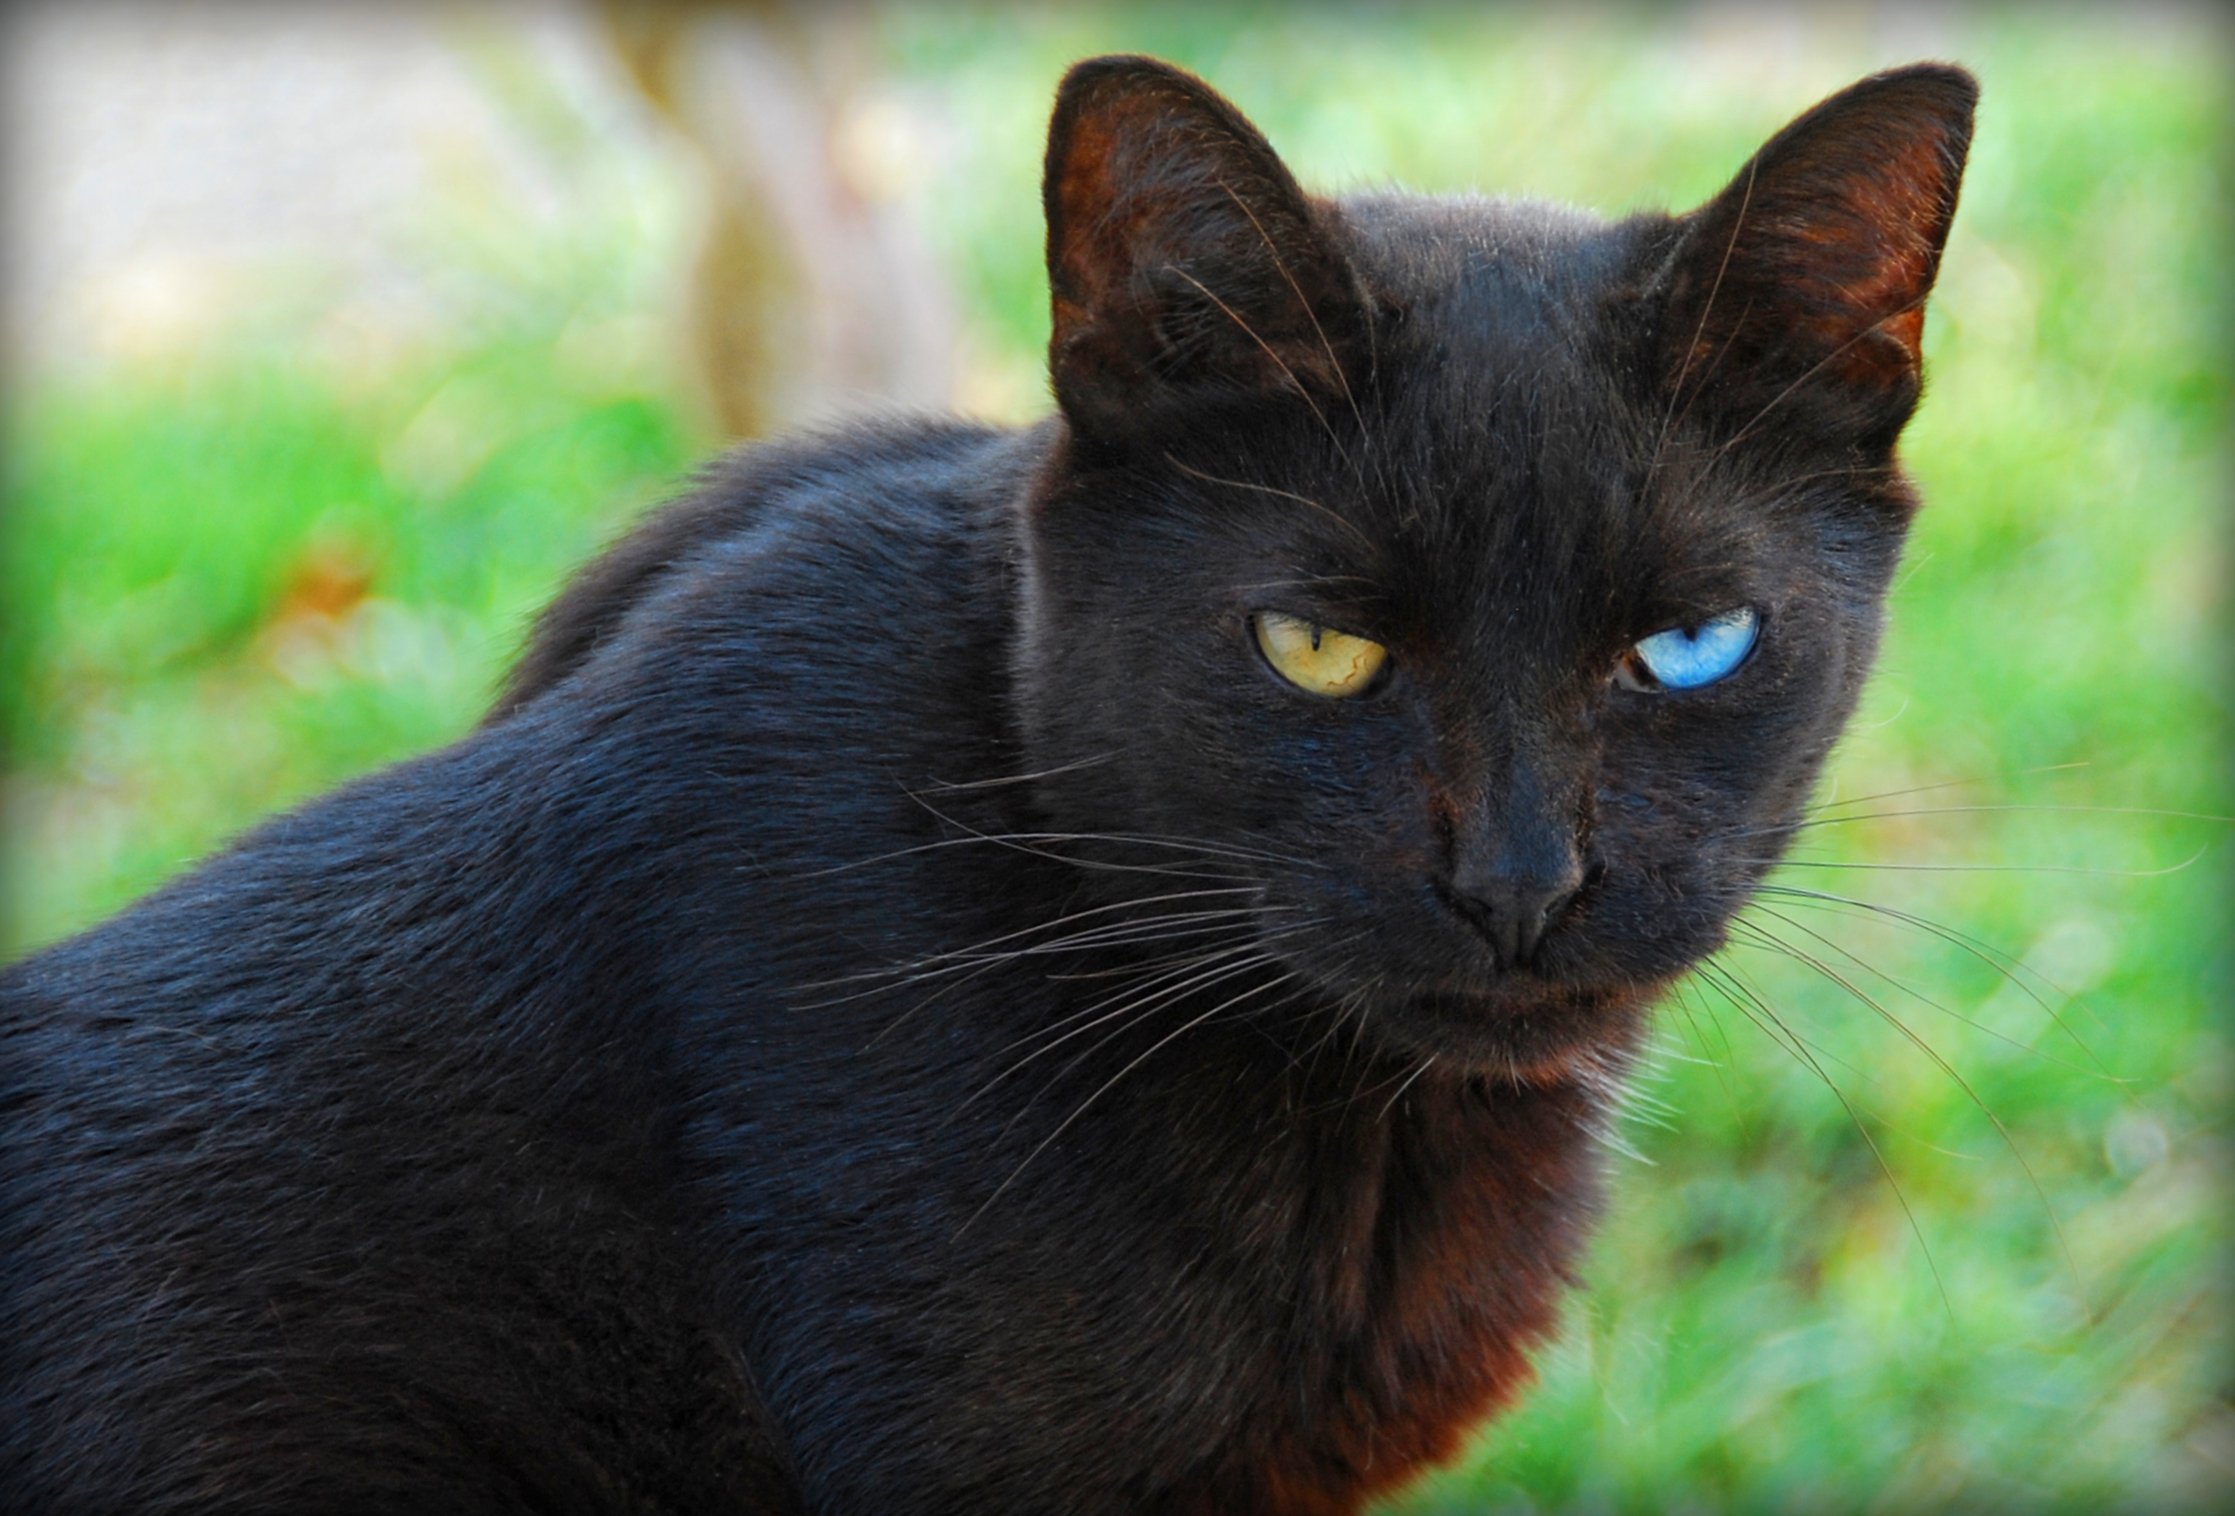 Nice Images Collection Black Cat With Blue And Green Eyes 2235x1516 Wallpaper Teahub Io